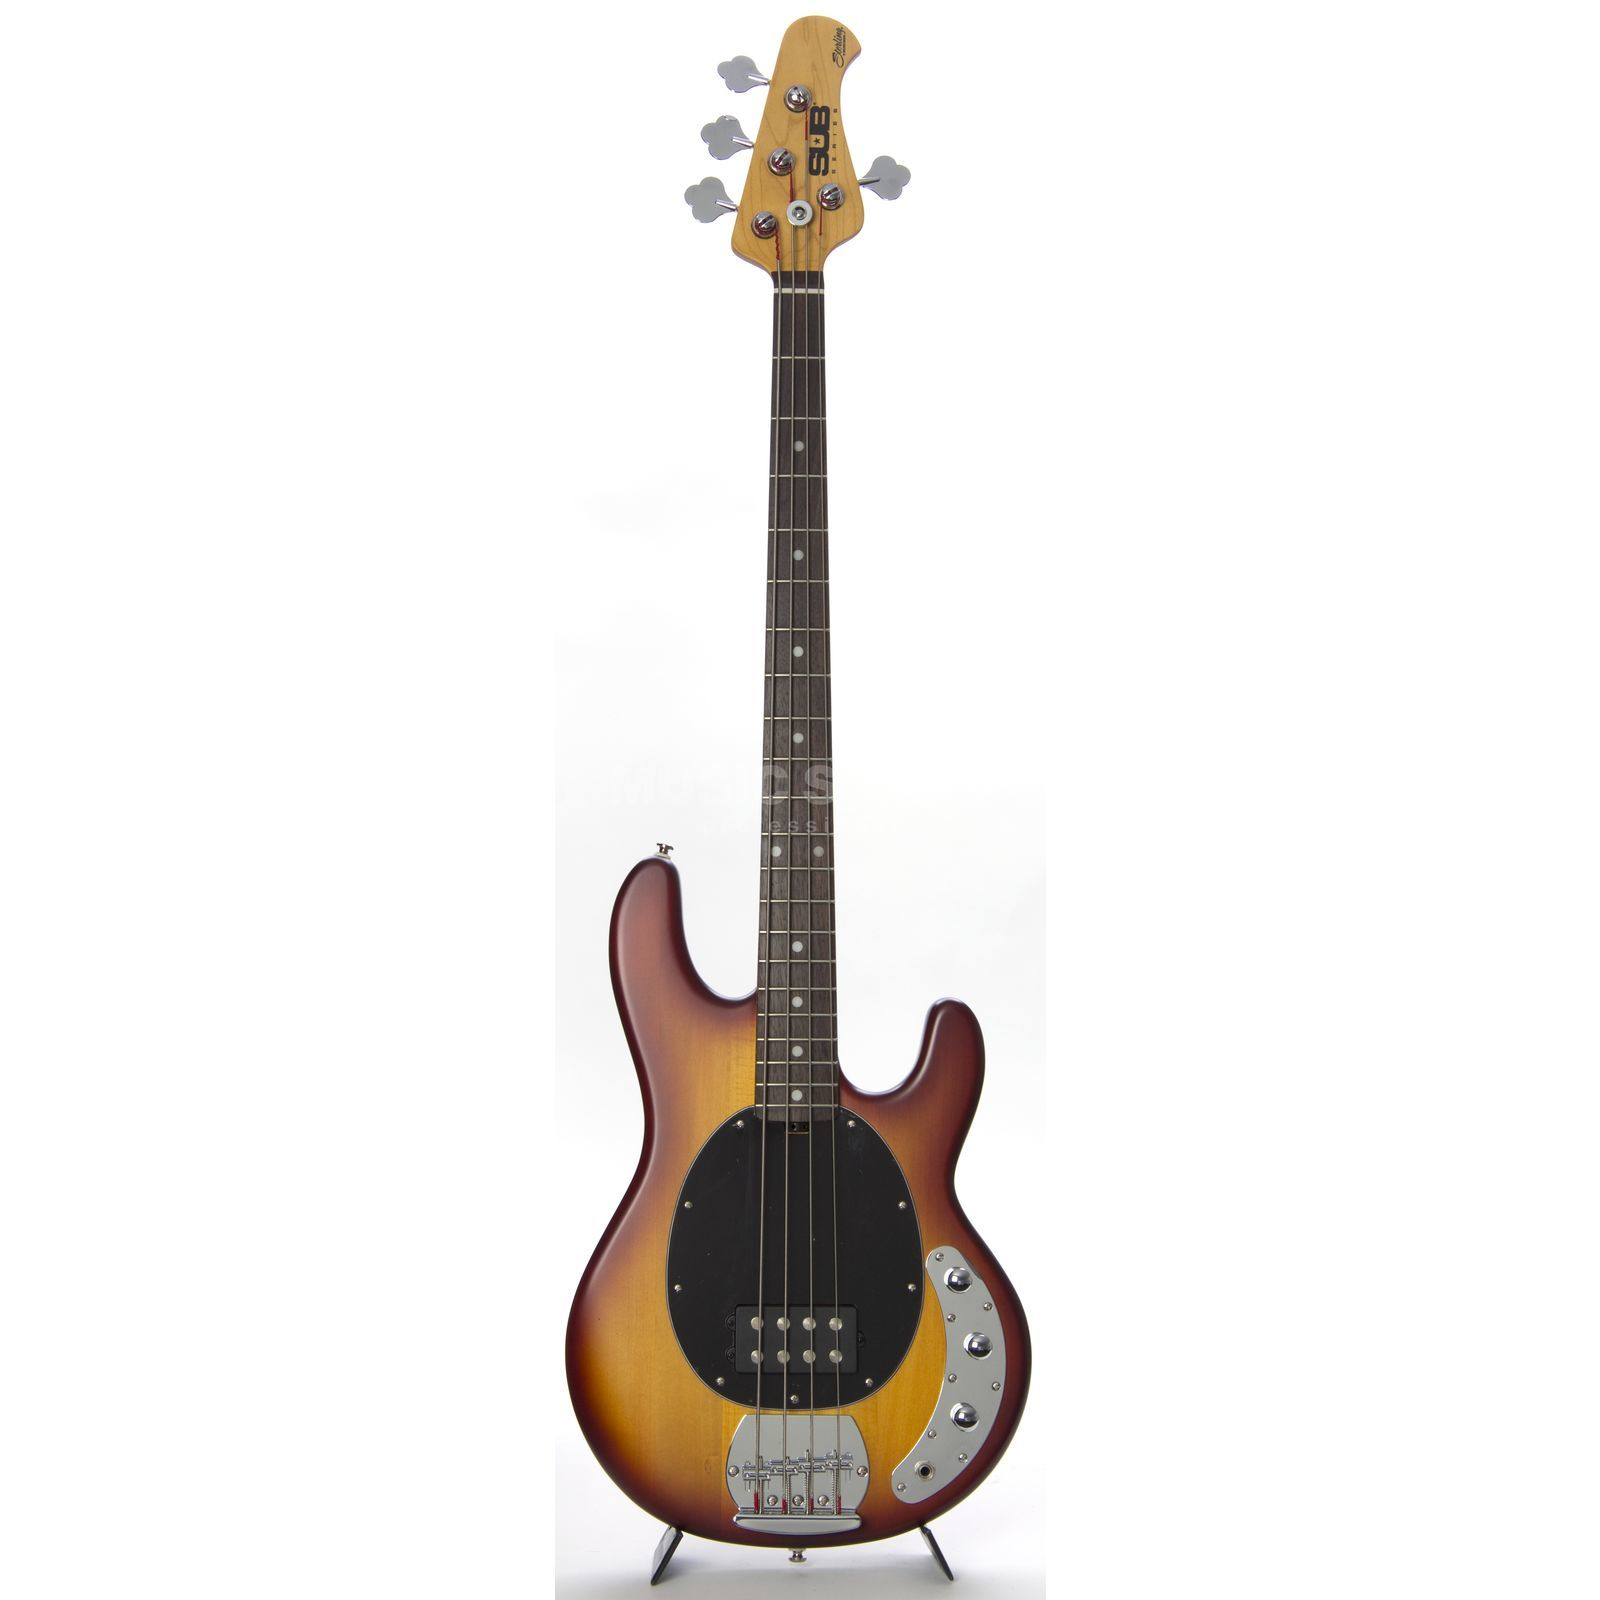 Sterling by Music Man SUB Ray 4 RW Honey Burst Satin Produktbild